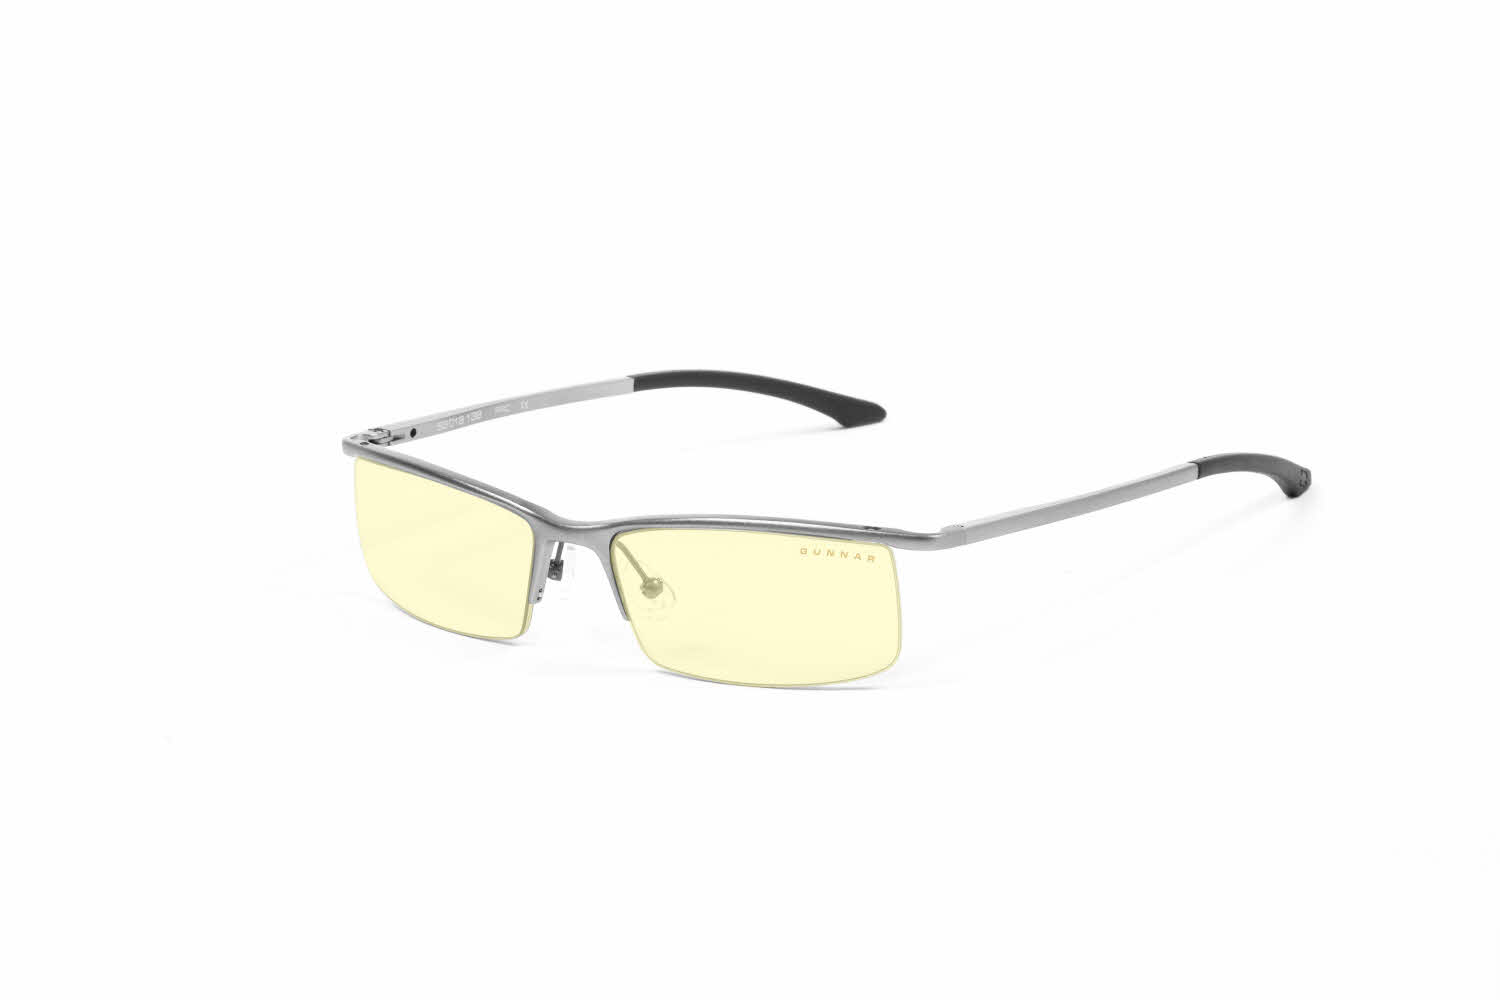 Gunnar Emissary Prescription Sunglasses